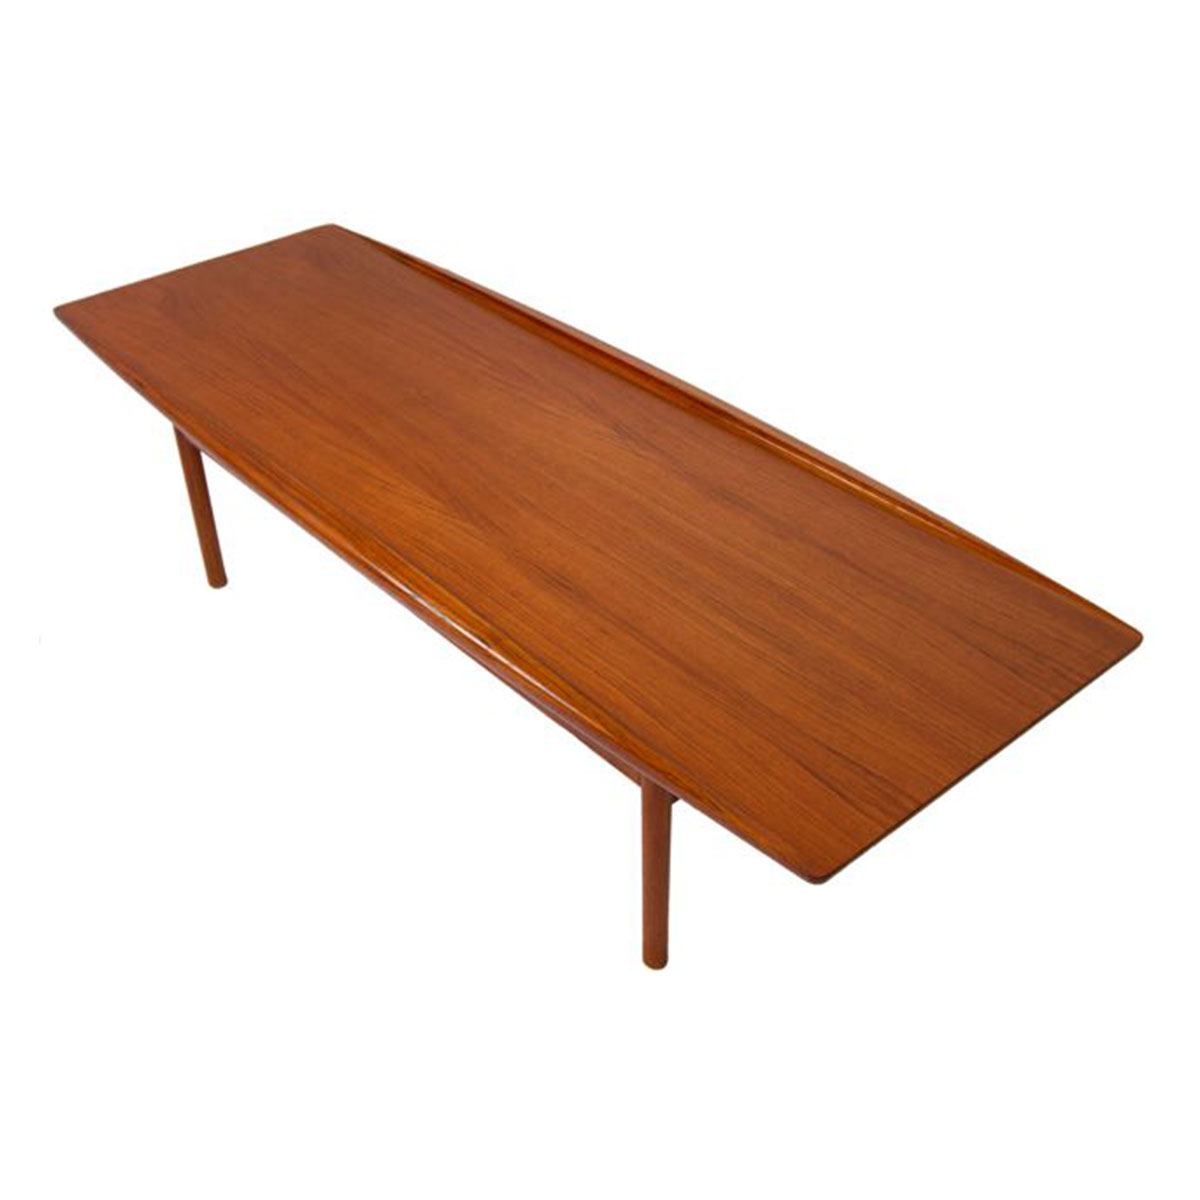 Grete Jalk Long Danish Modern Teak Surfboard Coffee Table